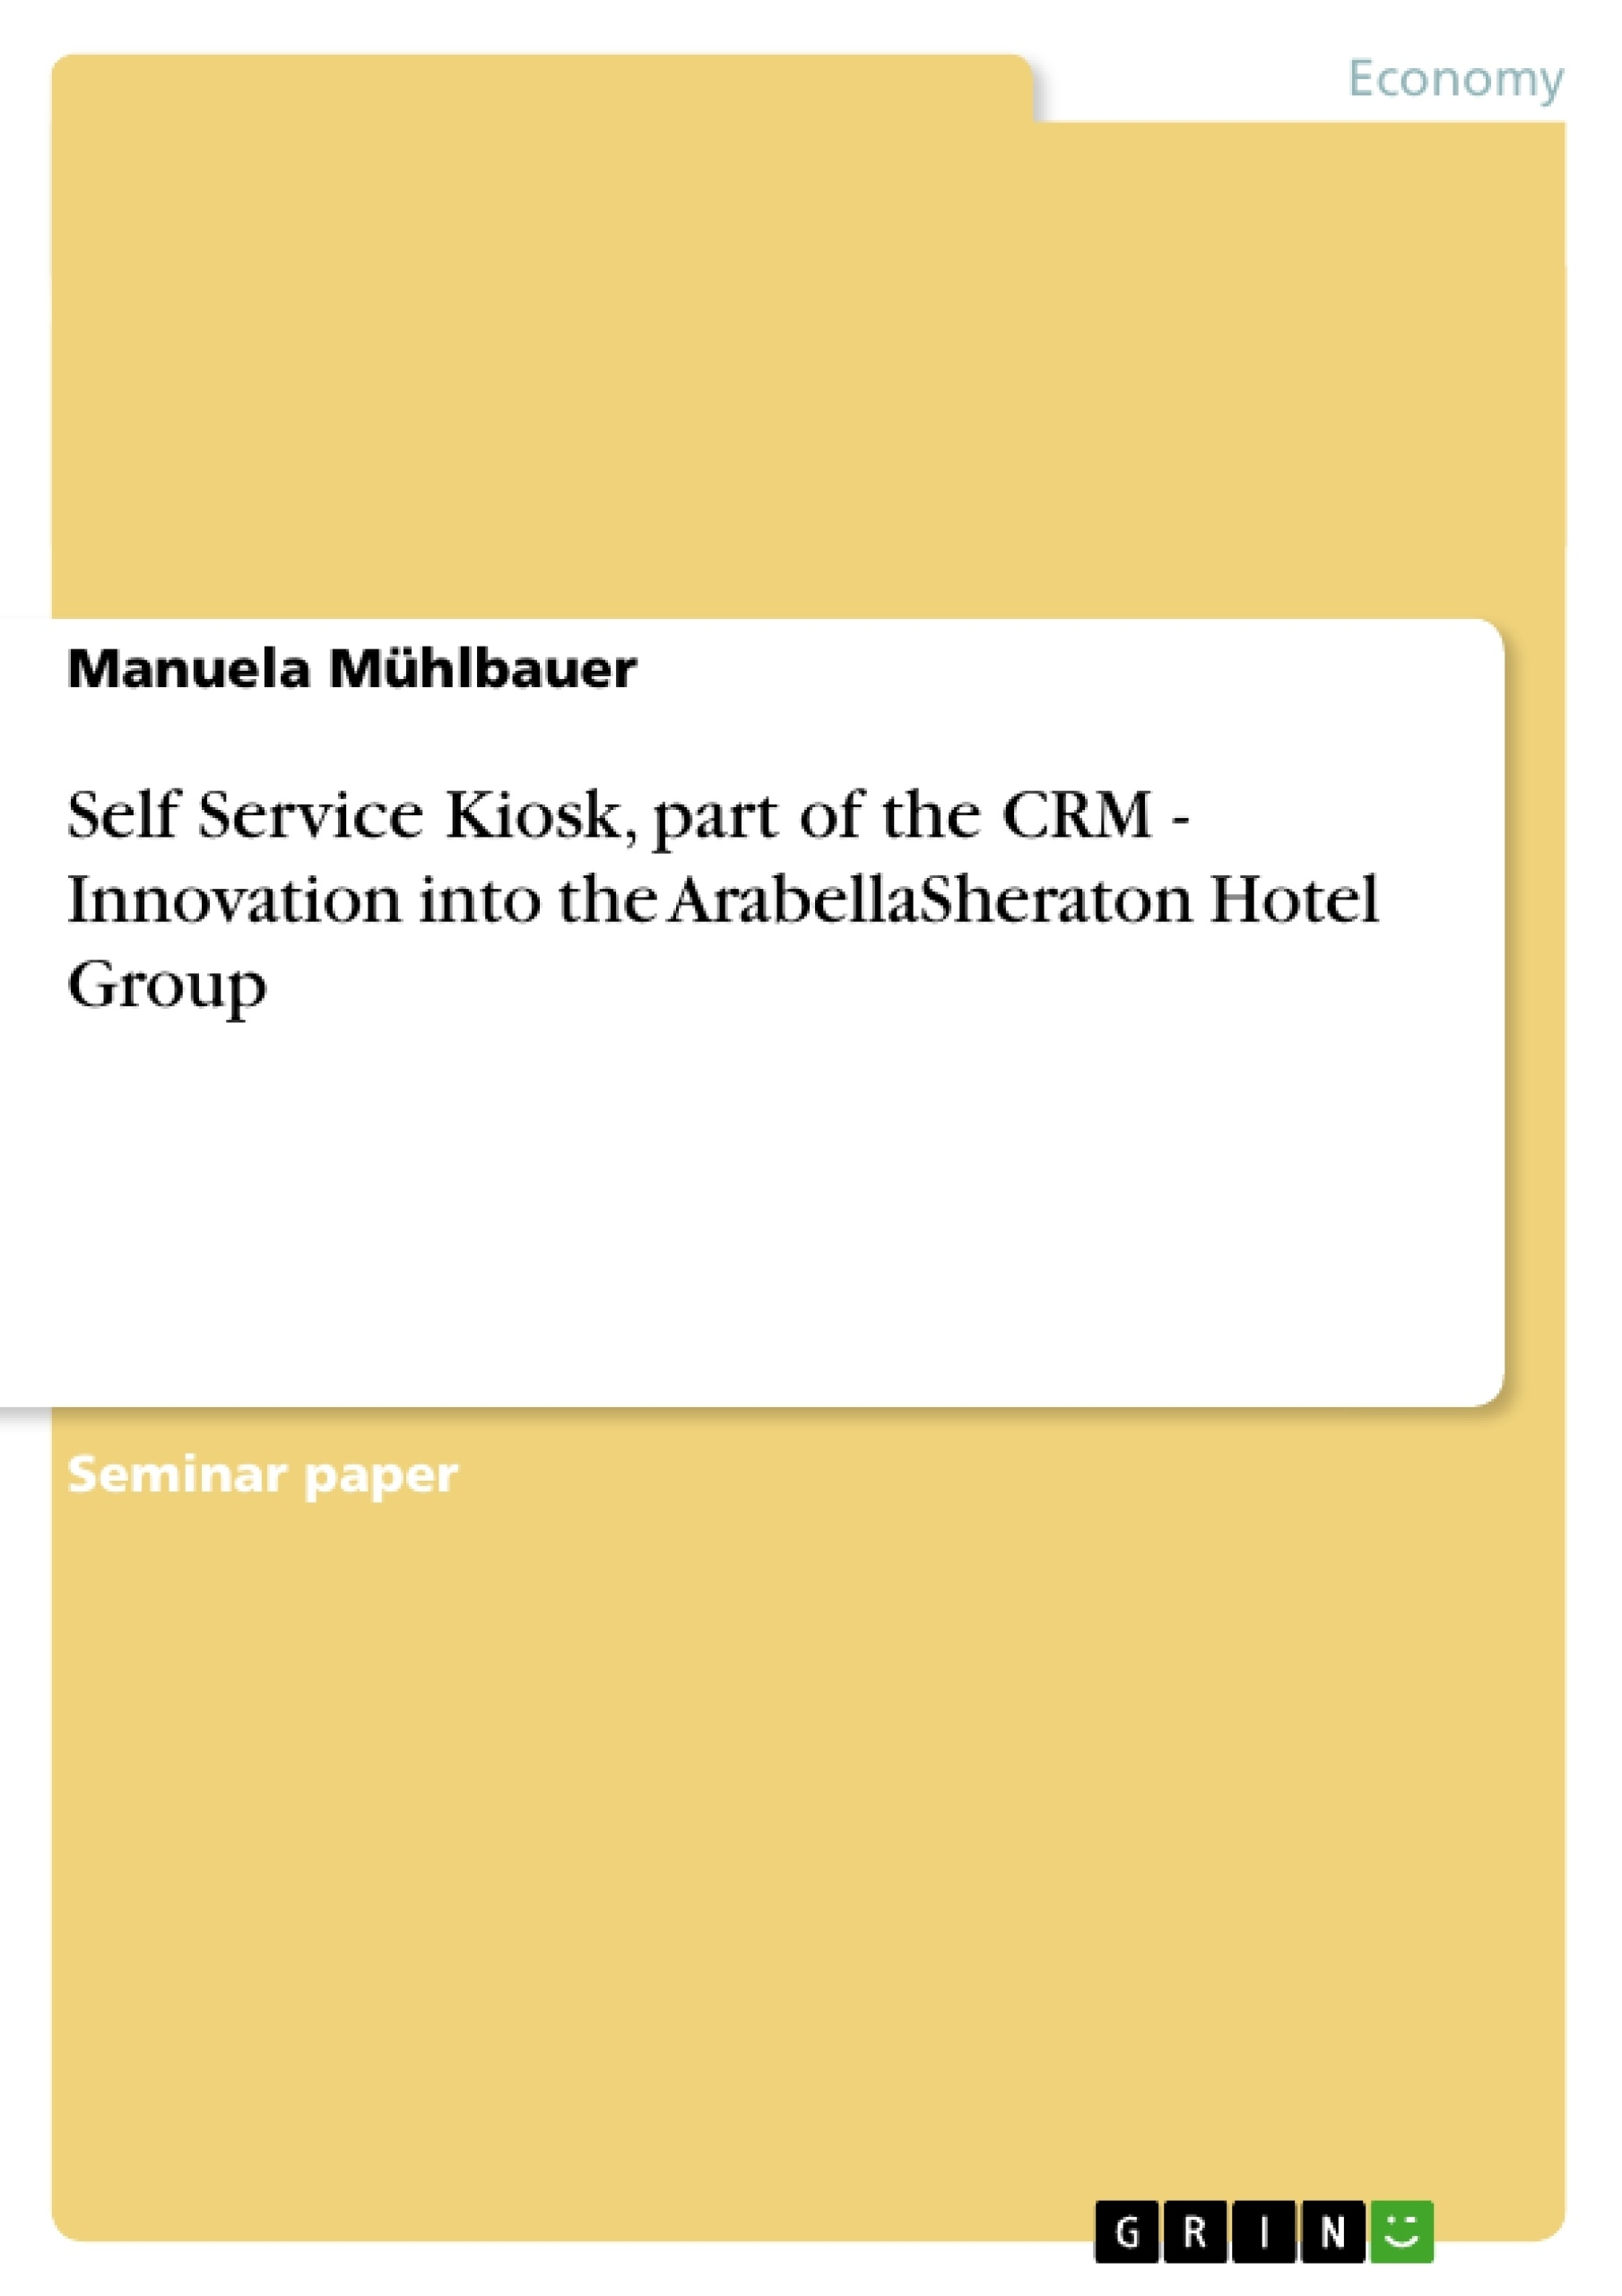 Title: Self Service Kiosk, part of the CRM - Innovation into the  ArabellaSheraton  Hotel Group